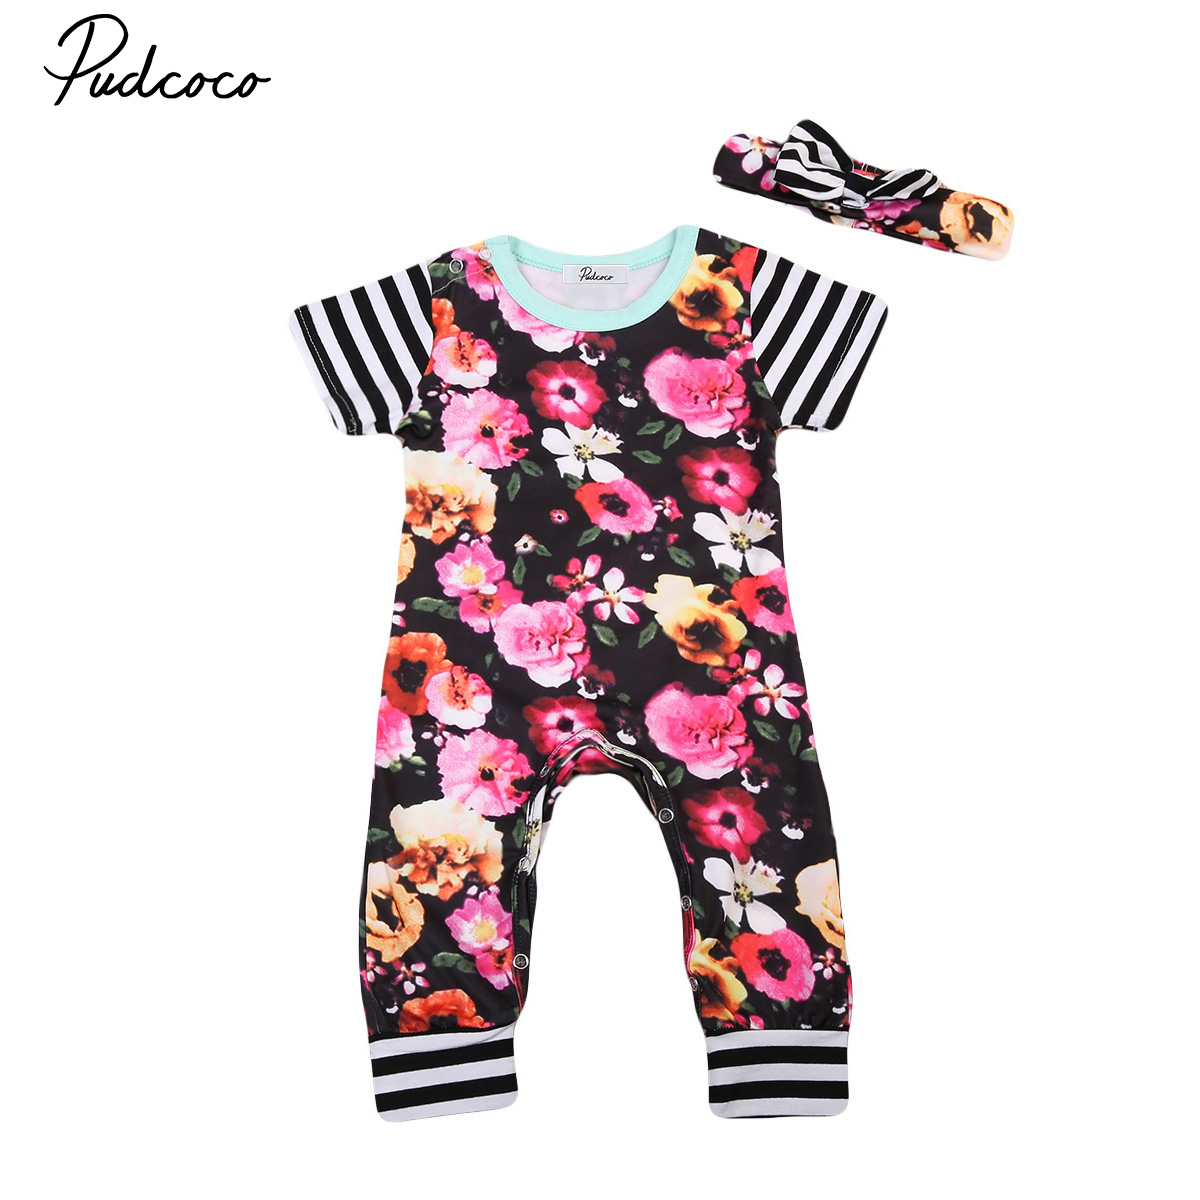 Pudcoco Newborn Infant Baby Girls Clothes Short Sleeve Floral Romper +Headband Summer Cute Cotton One-Piece Clothes pudcoco newborn infant baby girls clothes short sleeve floral romper headband summer cute cotton one piece clothes